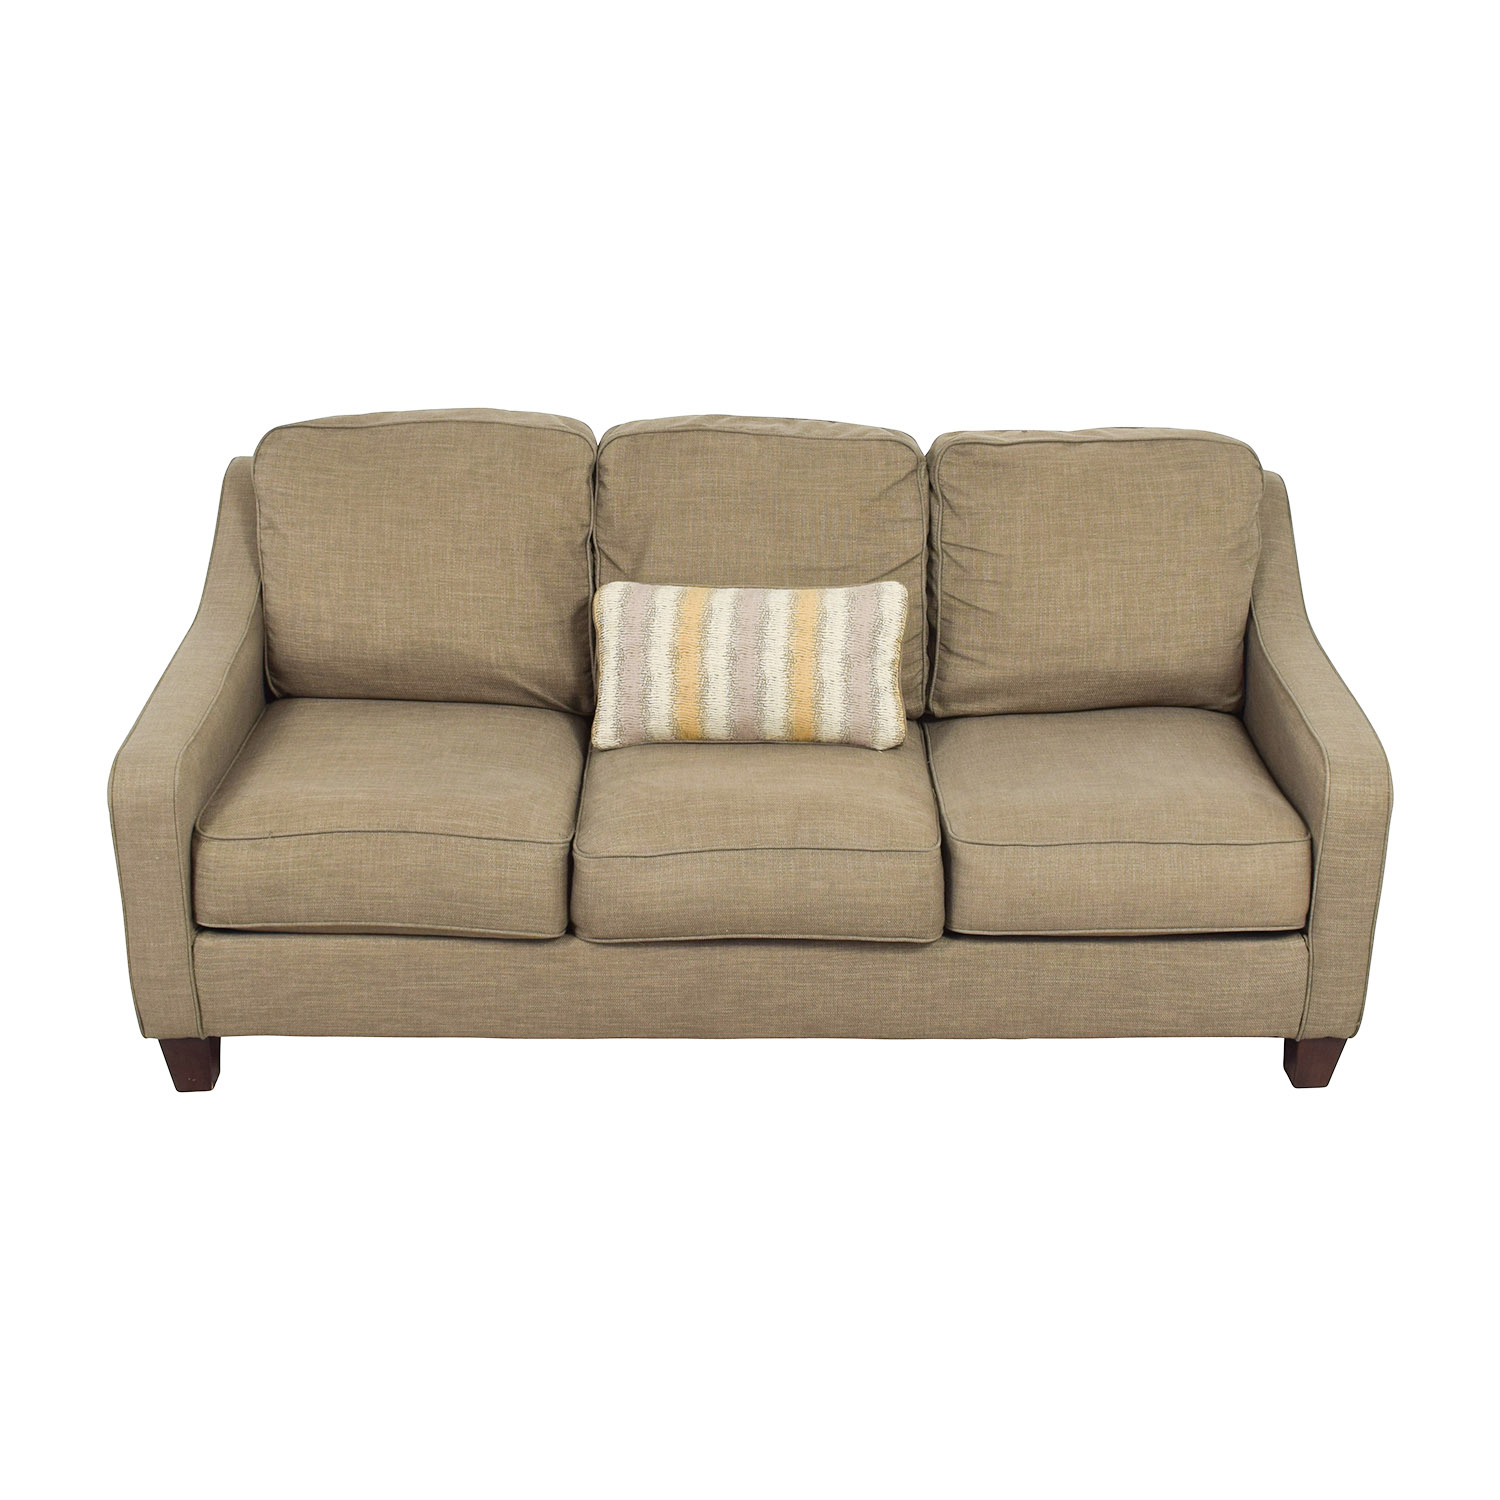 55 OFF Jennifer Furniture Jennifer Furniture Brown